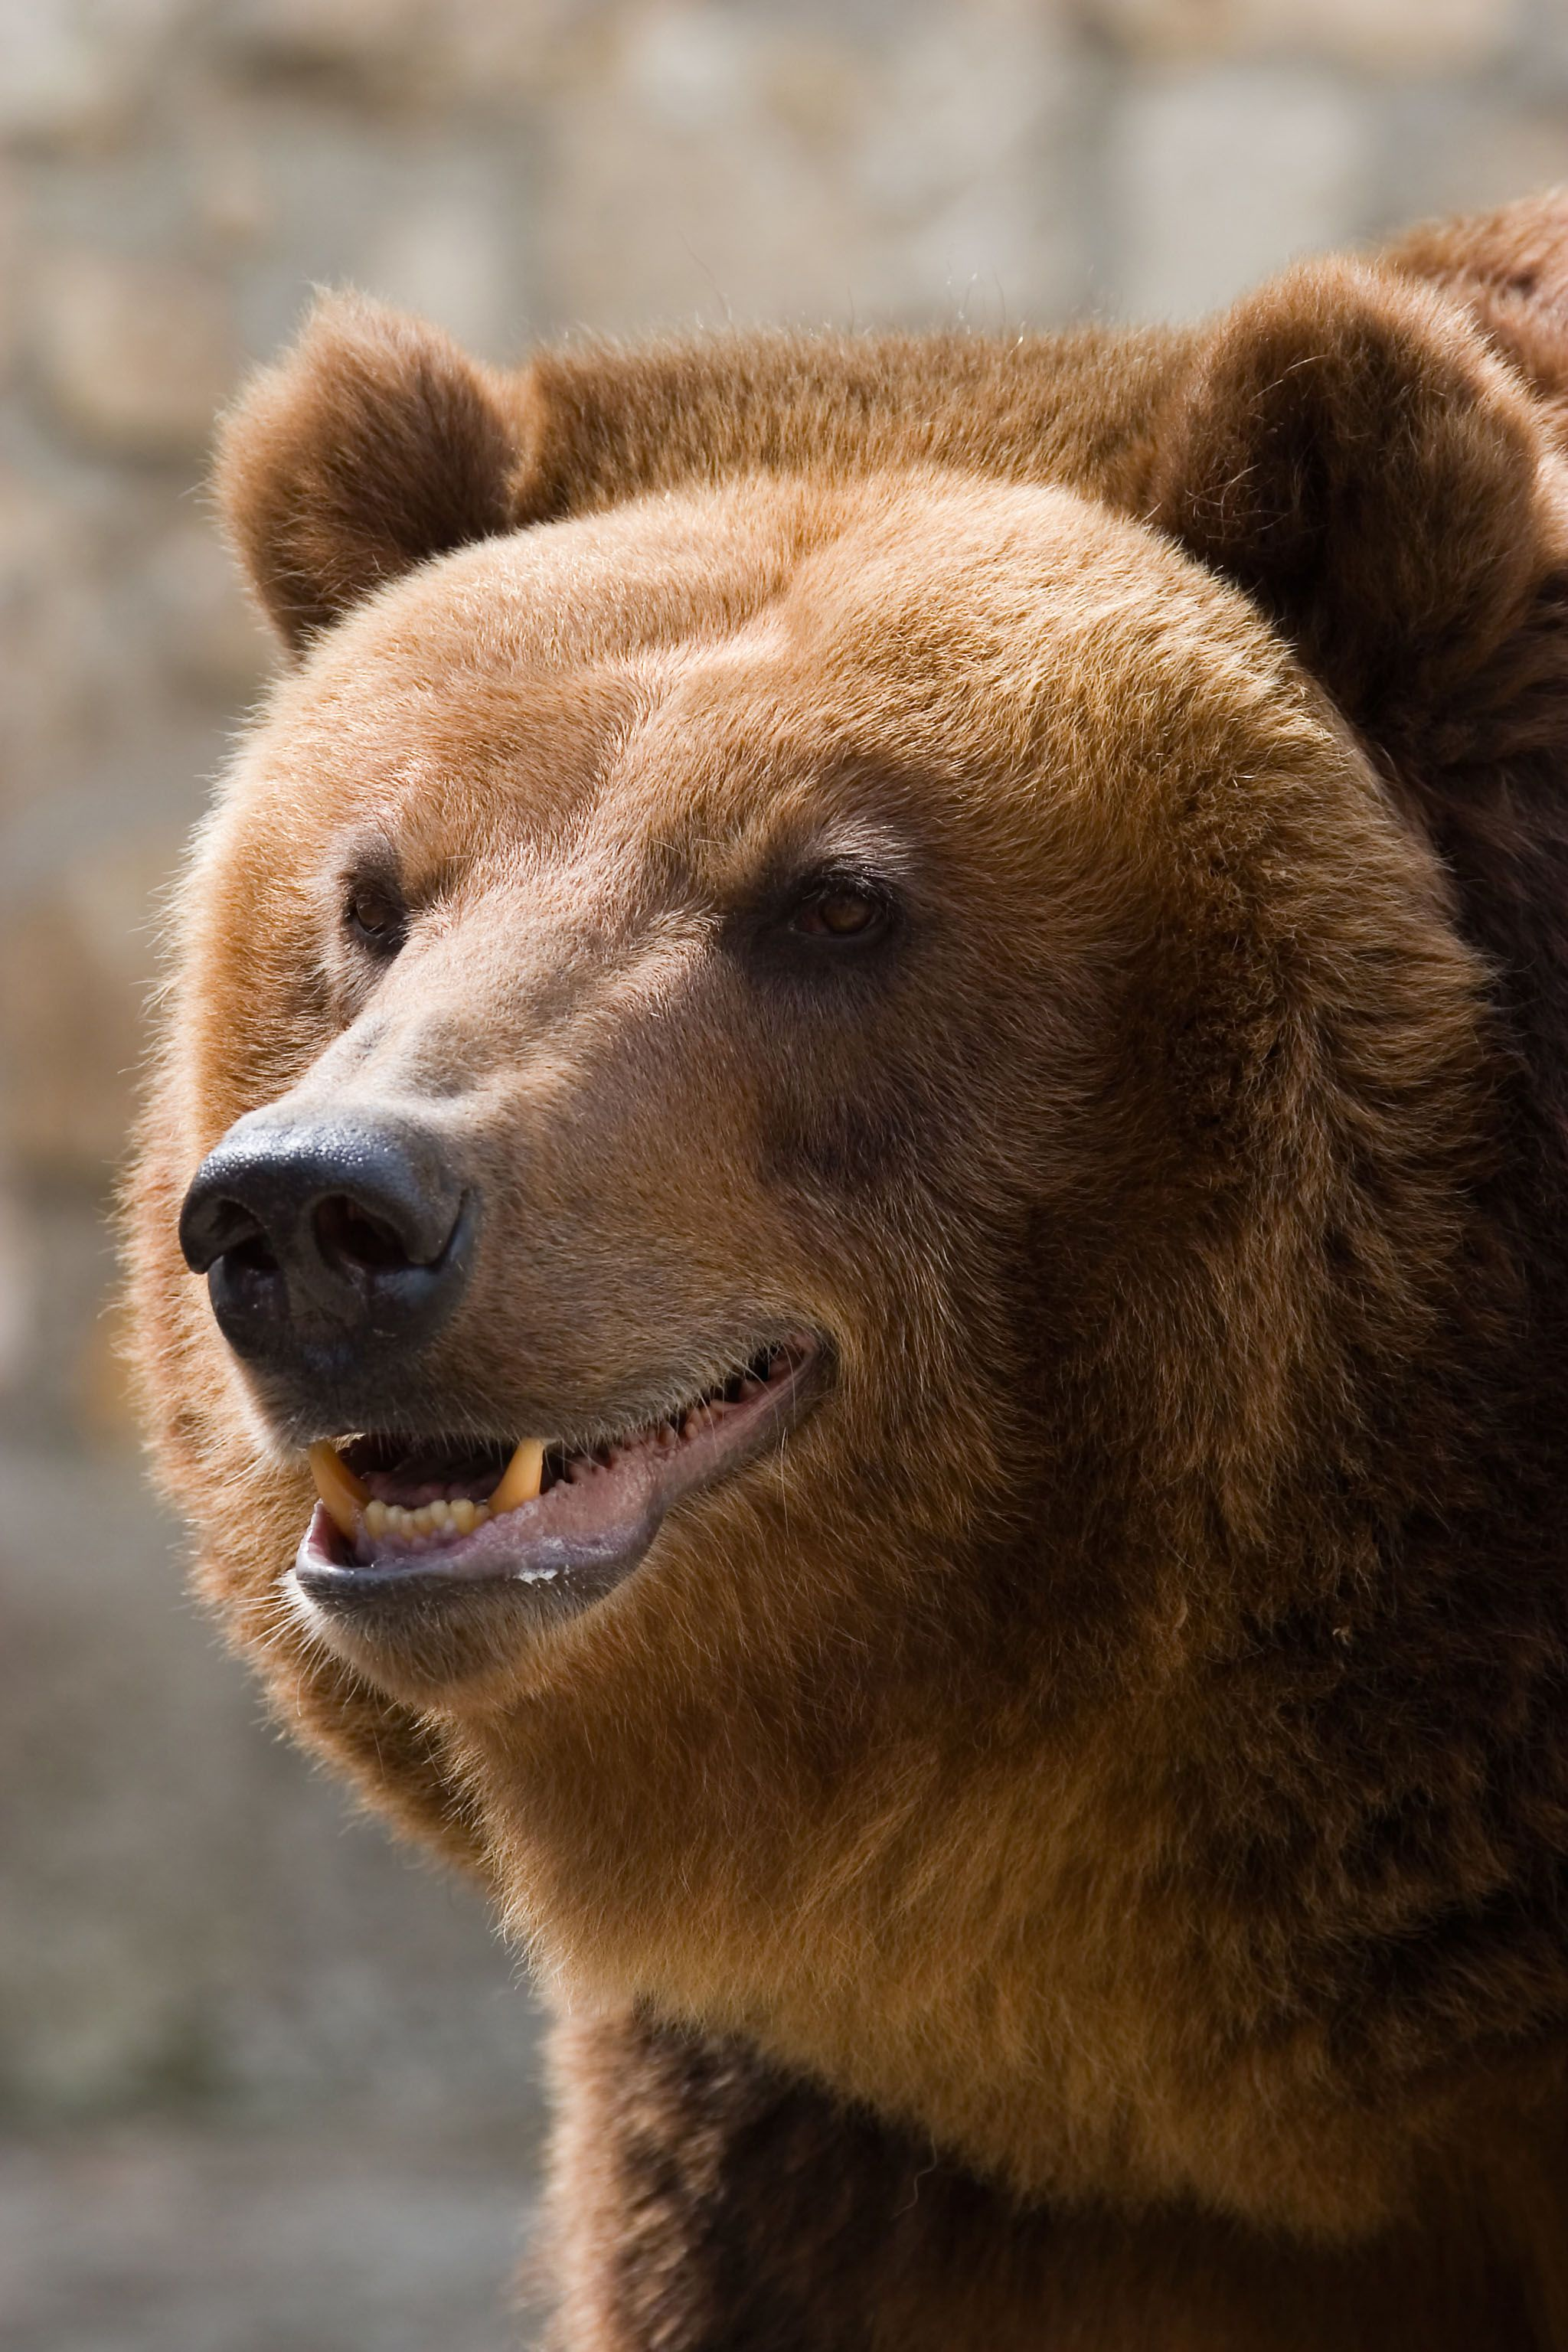 One large grizzly bear! (With images) Grizzly bear